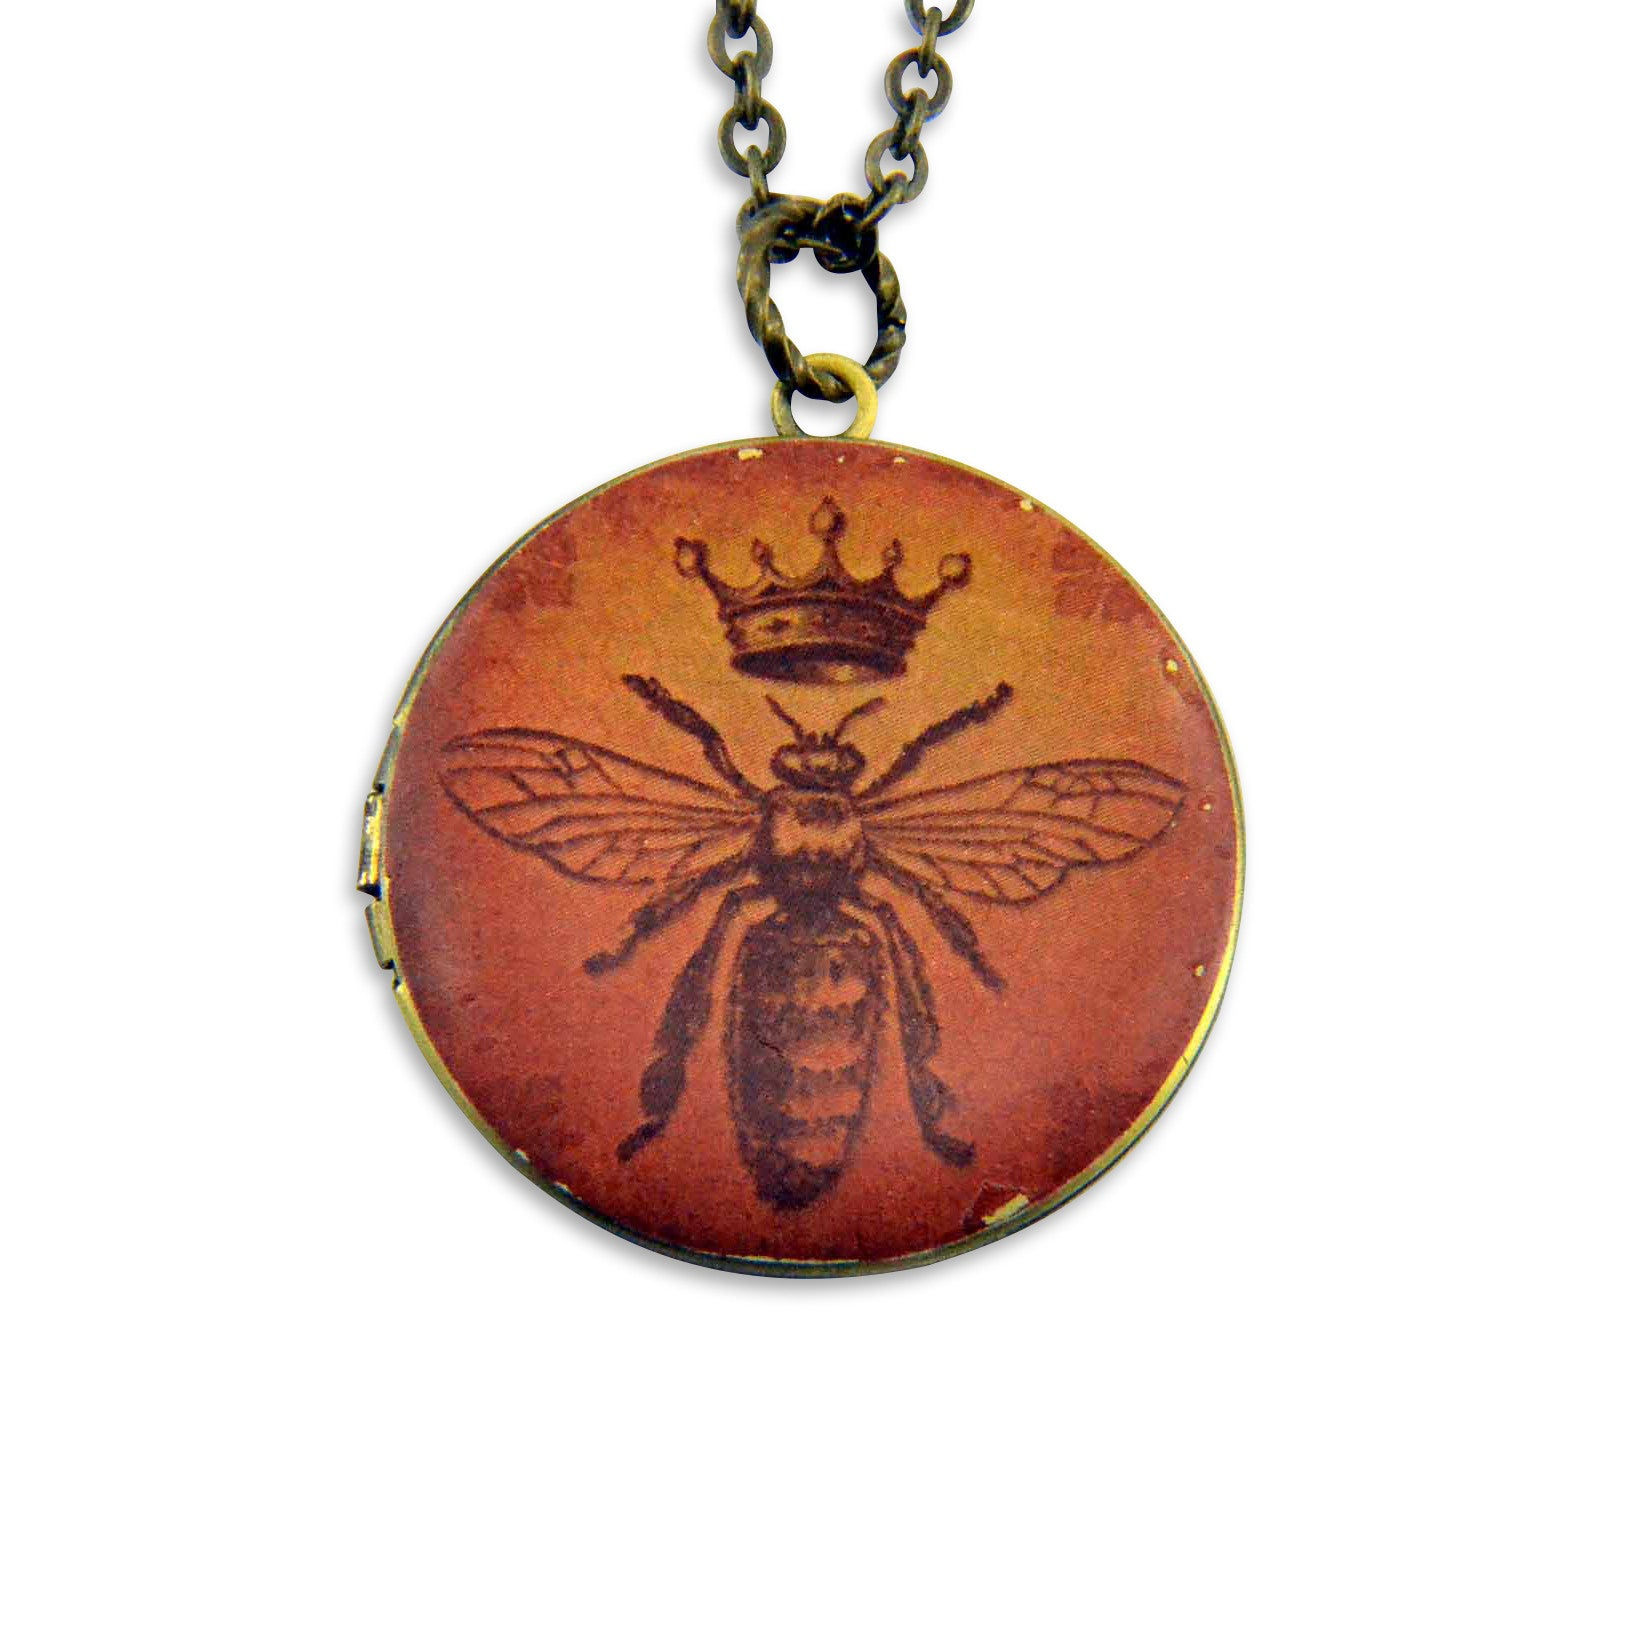 Queen Bee Vintage Theme Photo Locket - Gwen Delicious Jewelry Designs